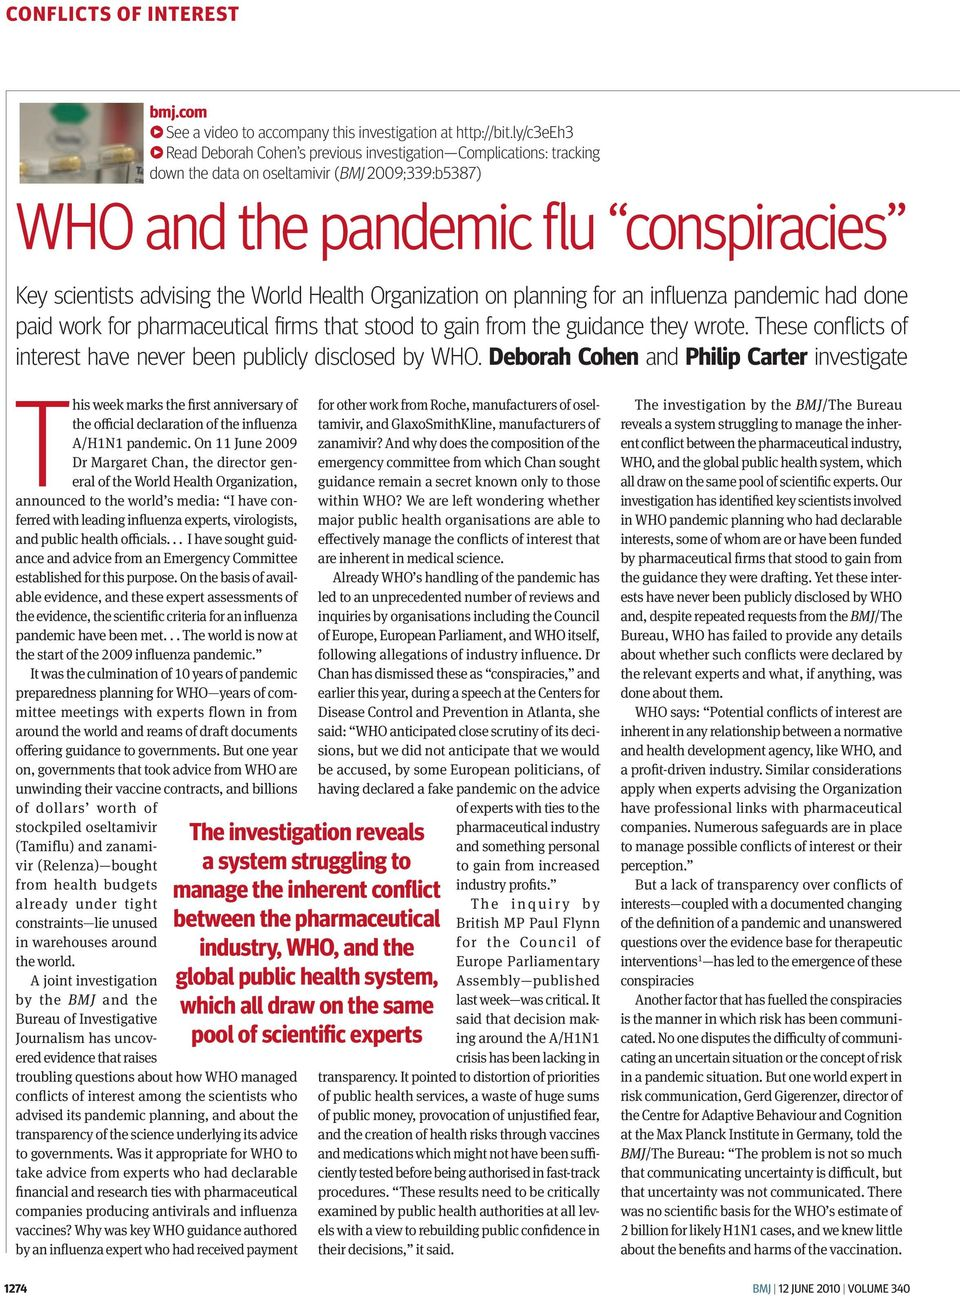 World Health Organization on planning for an influenza pandemic had done paid work for pharmaceutical firms that stood to gain from the guidance they wrote.